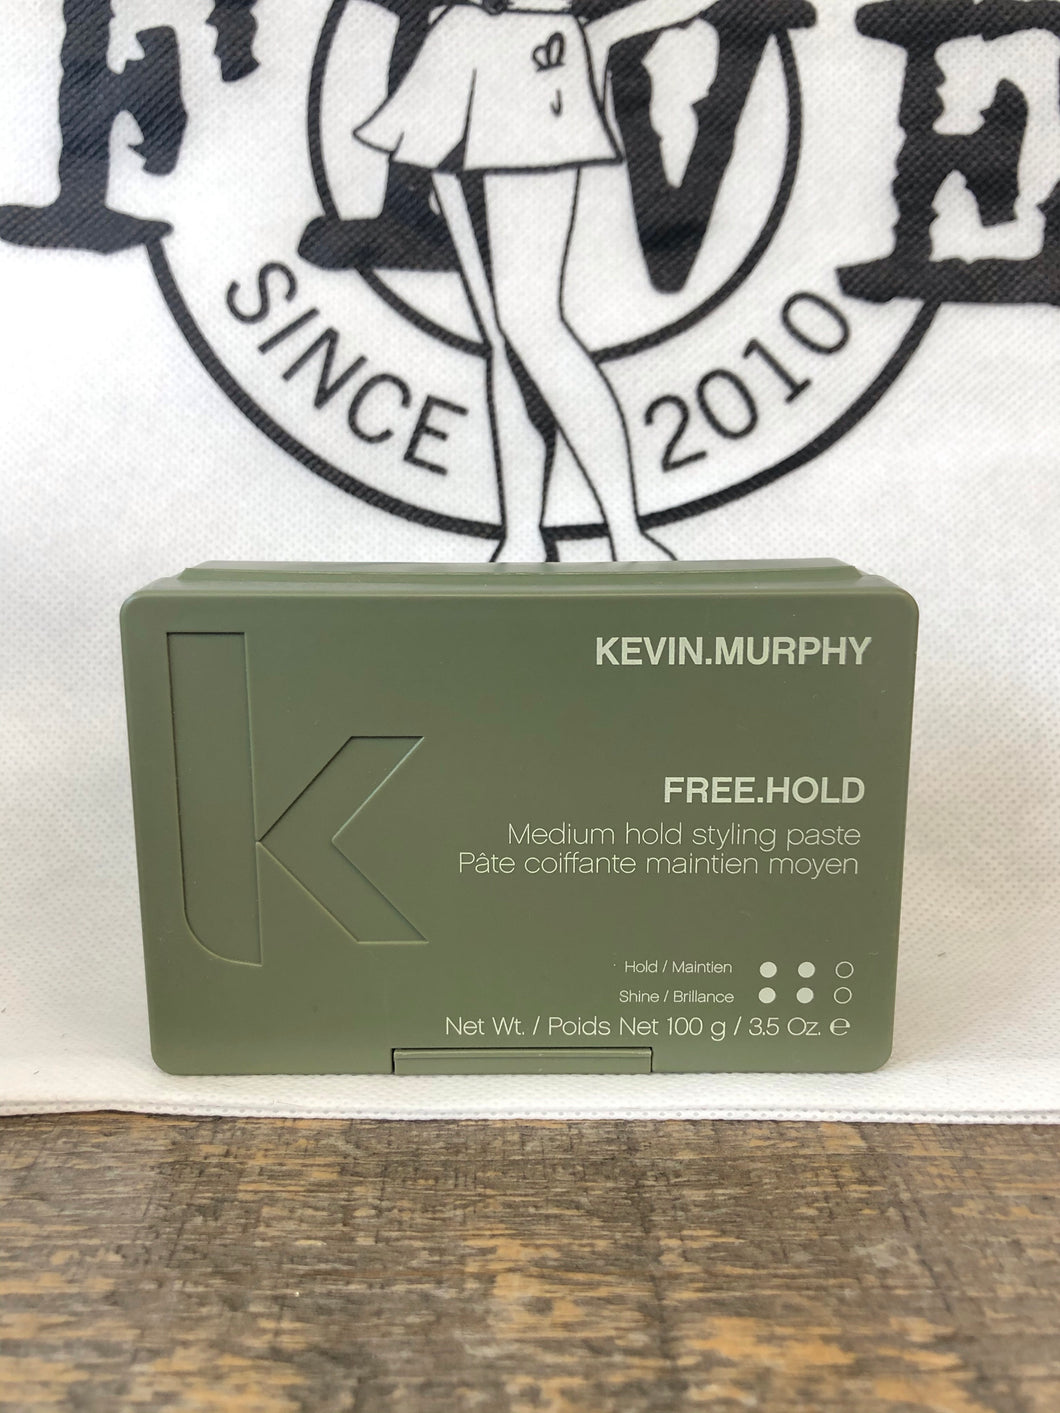 Free. Hold by Kevin Murphy